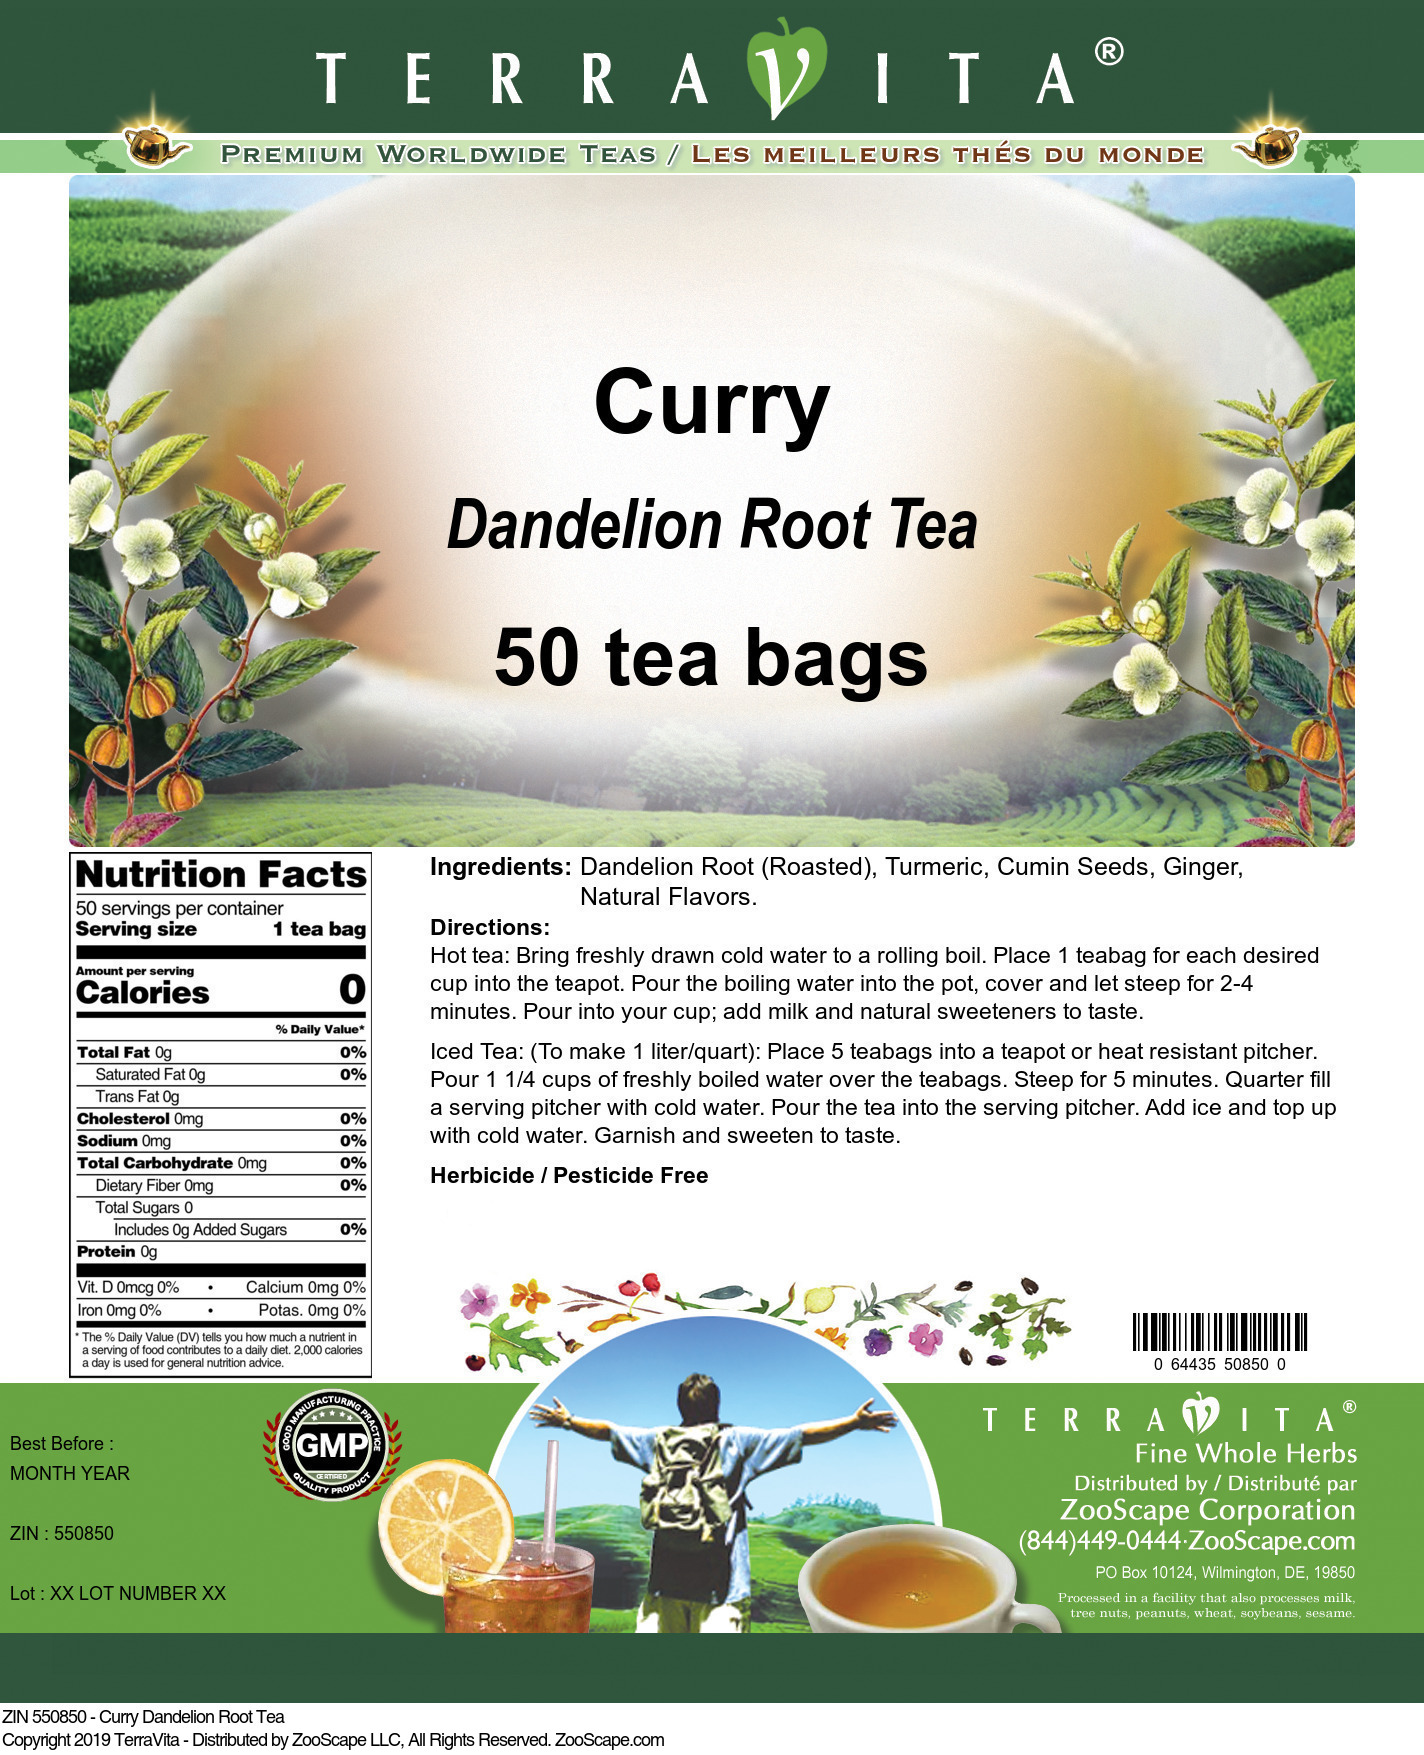 Curry Dandelion Root